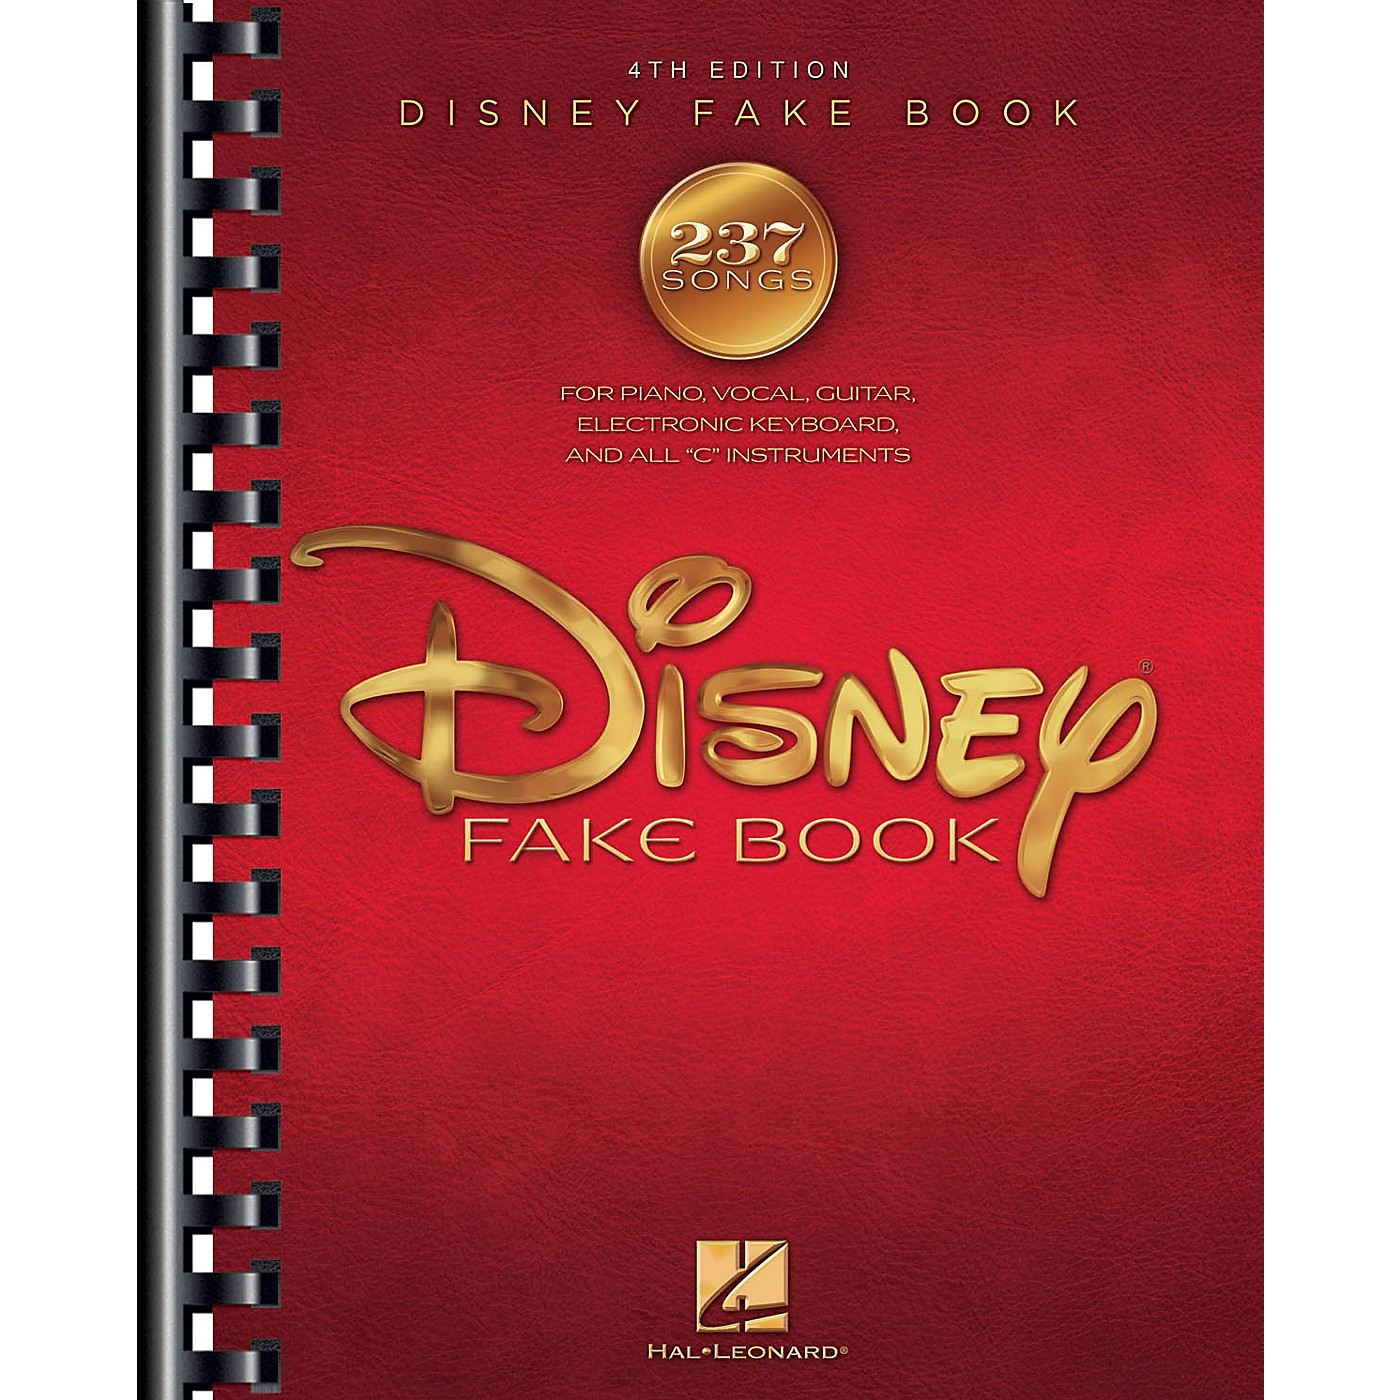 Hal Leonard The Disney Fake Book - 4th Edition Fake Book Series Softcover thumbnail